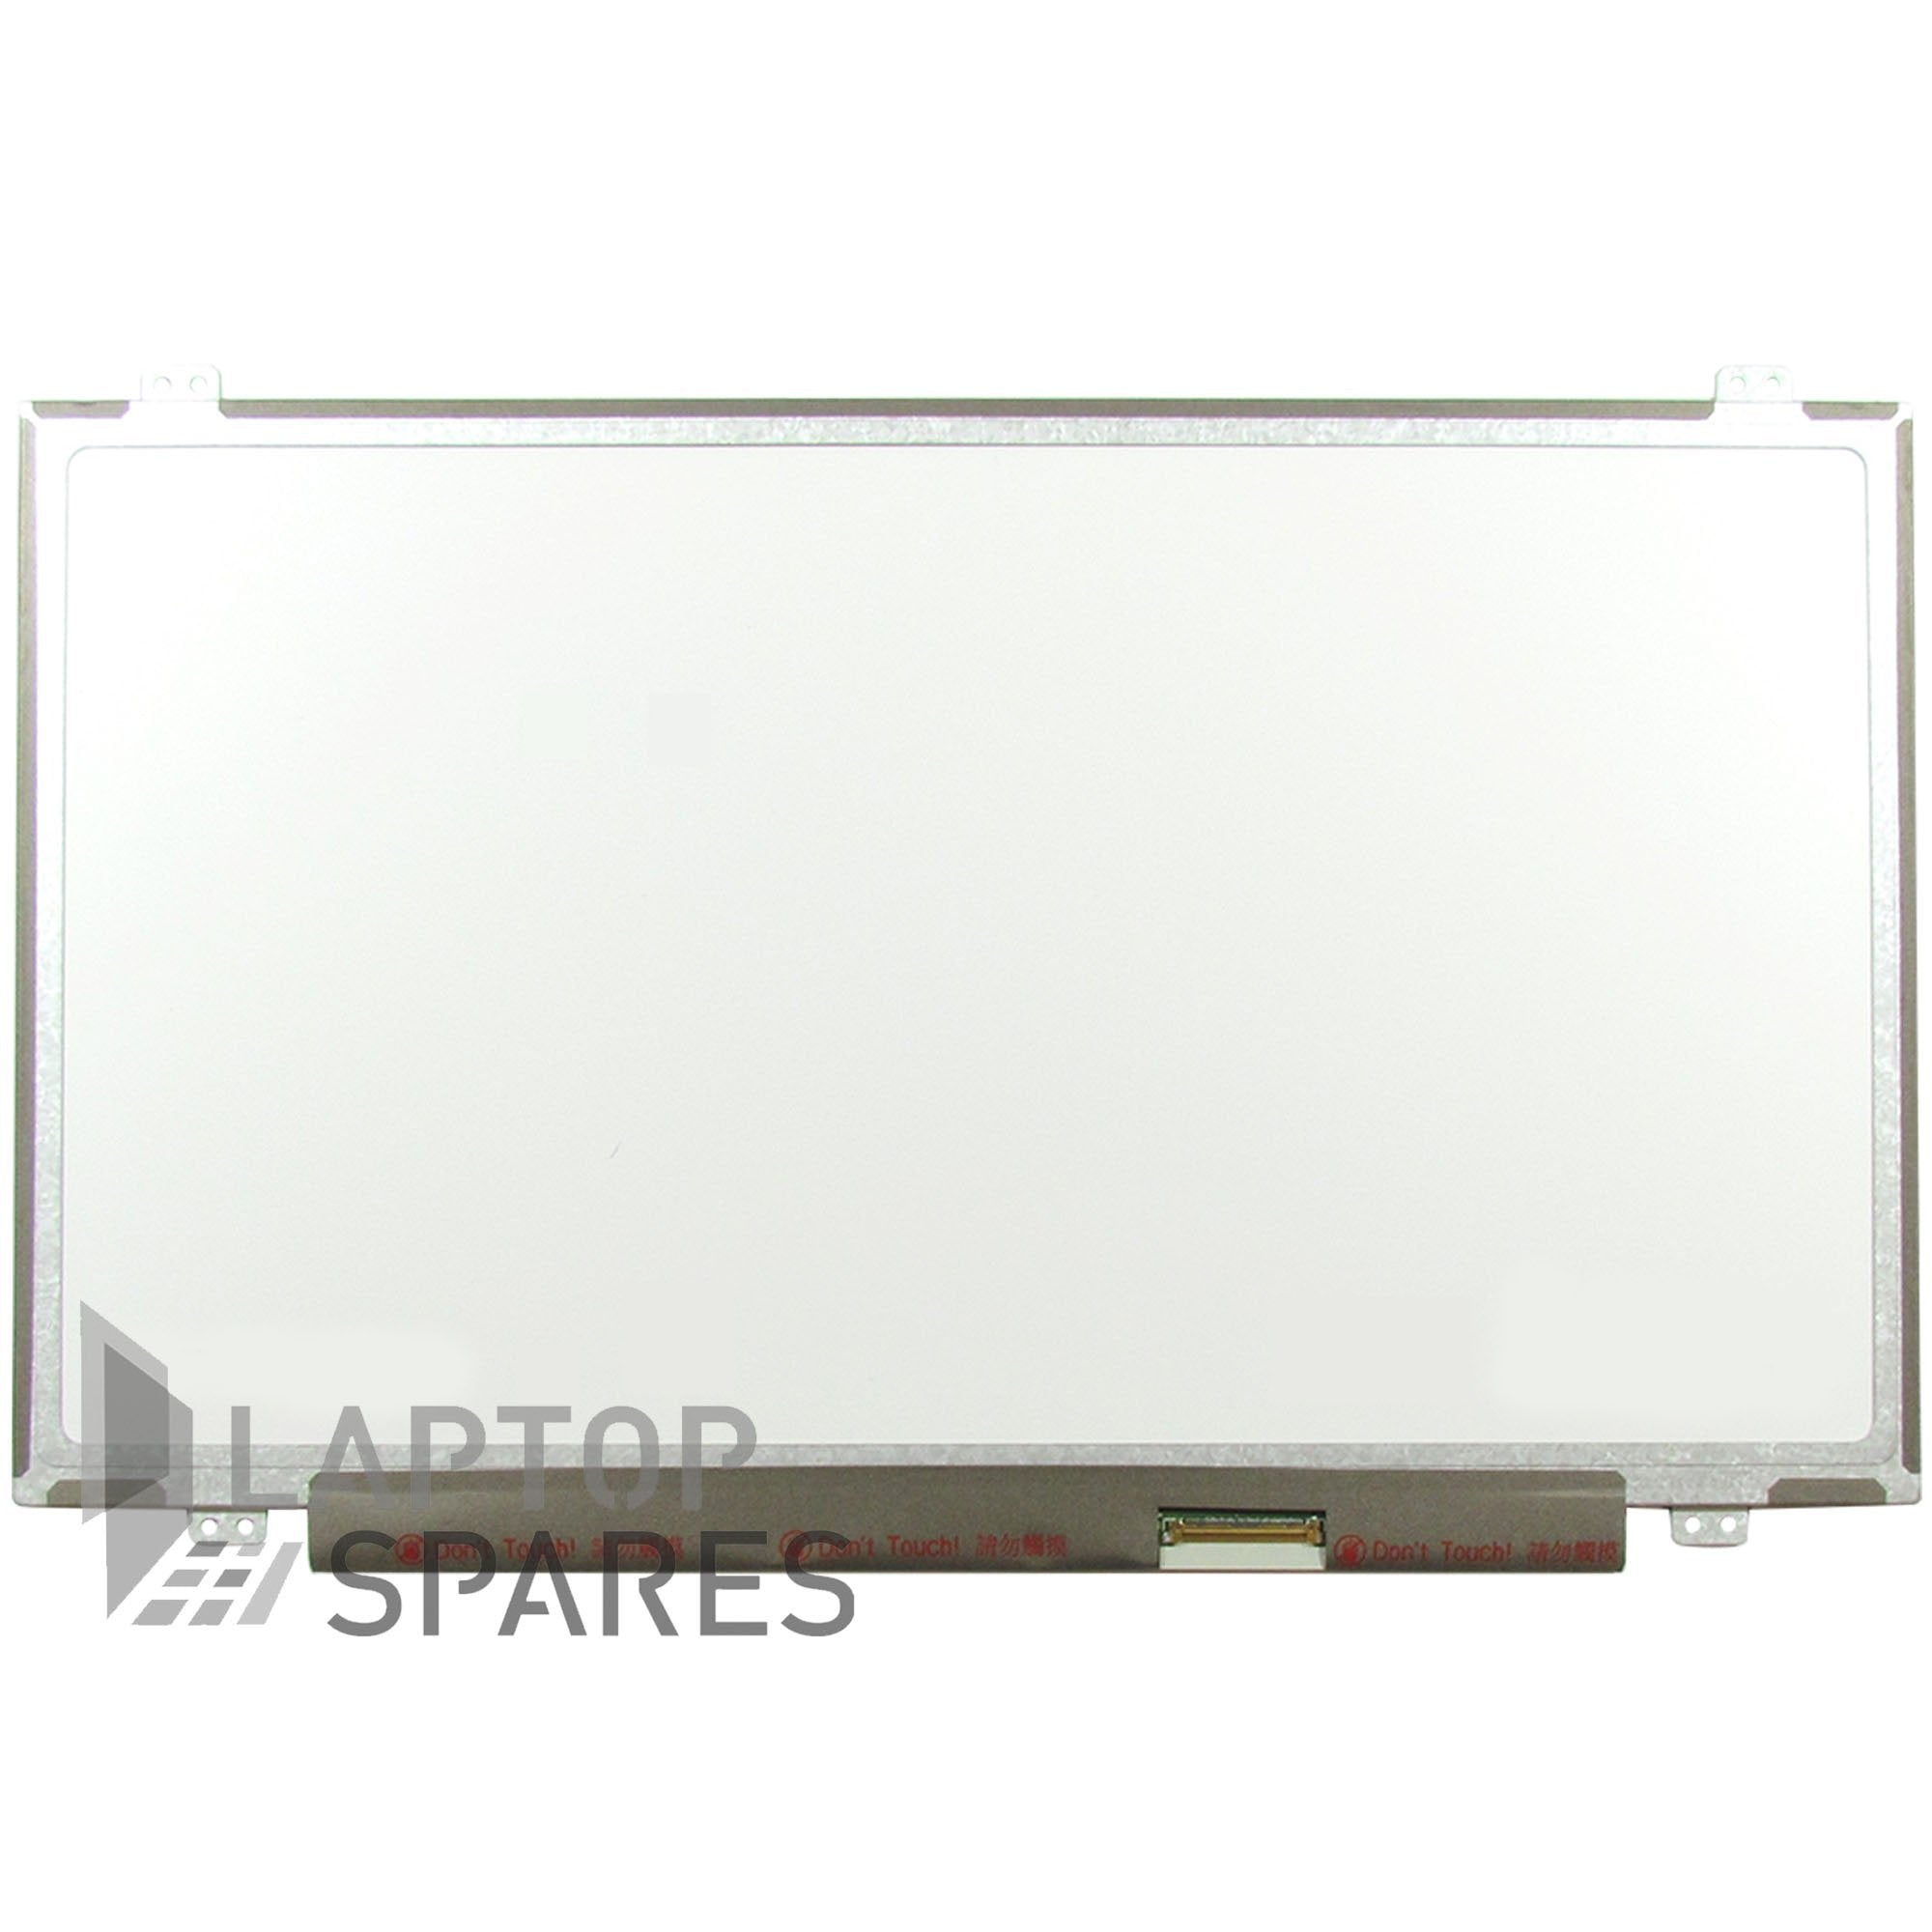 ChiMei Innolux N140BGE-L32 Rev.A2 Compatible 40-Pin Slim Screen 1366x768